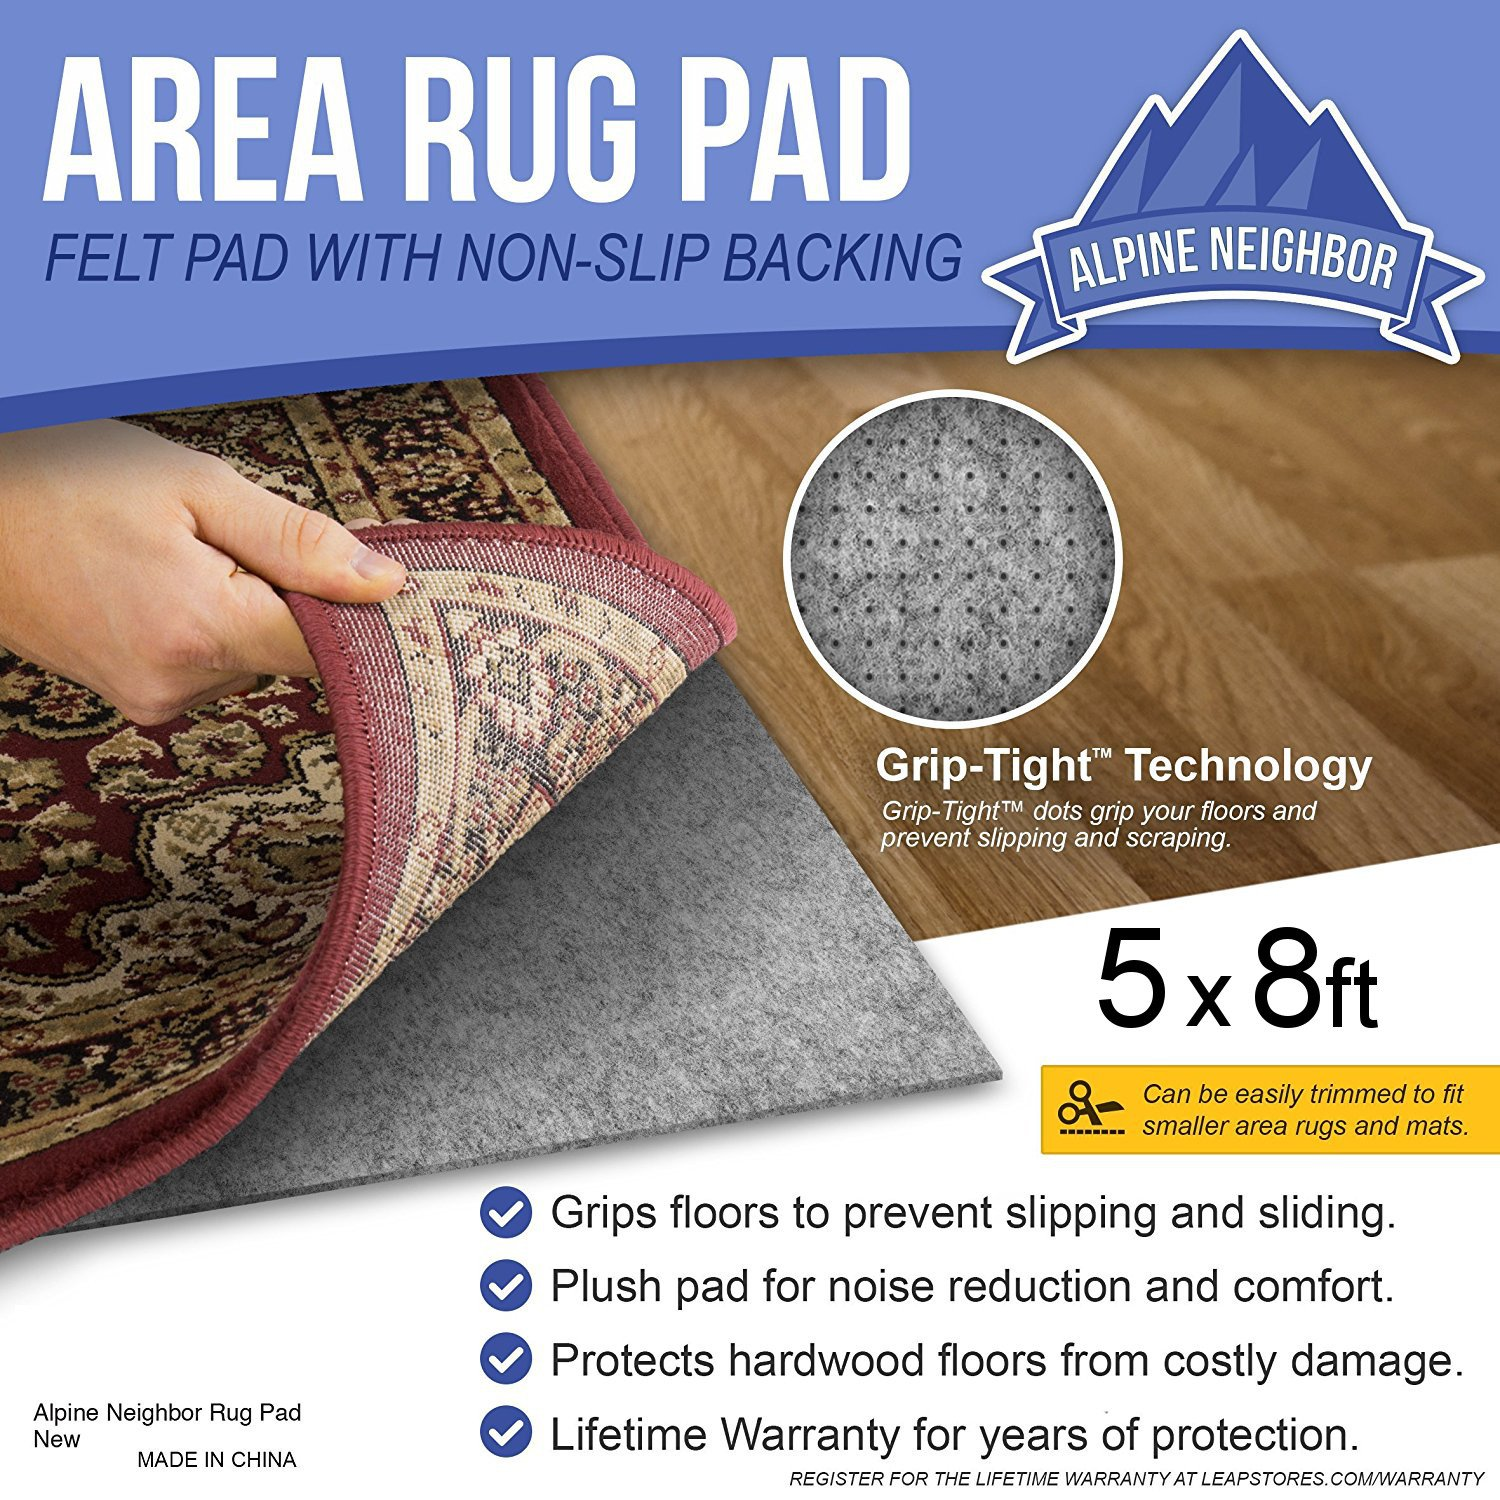 Alpine Neighbor Area Rug Pad with GRIP TIGHT Technology (5x8) | Non Slip Padding Perfect for Hardwood Floors | Thick Felt Cushion for Rugs Nonskid Kitchen Persian Carpet Mat Natural Grey by Alpine Neighbor (Image #5)